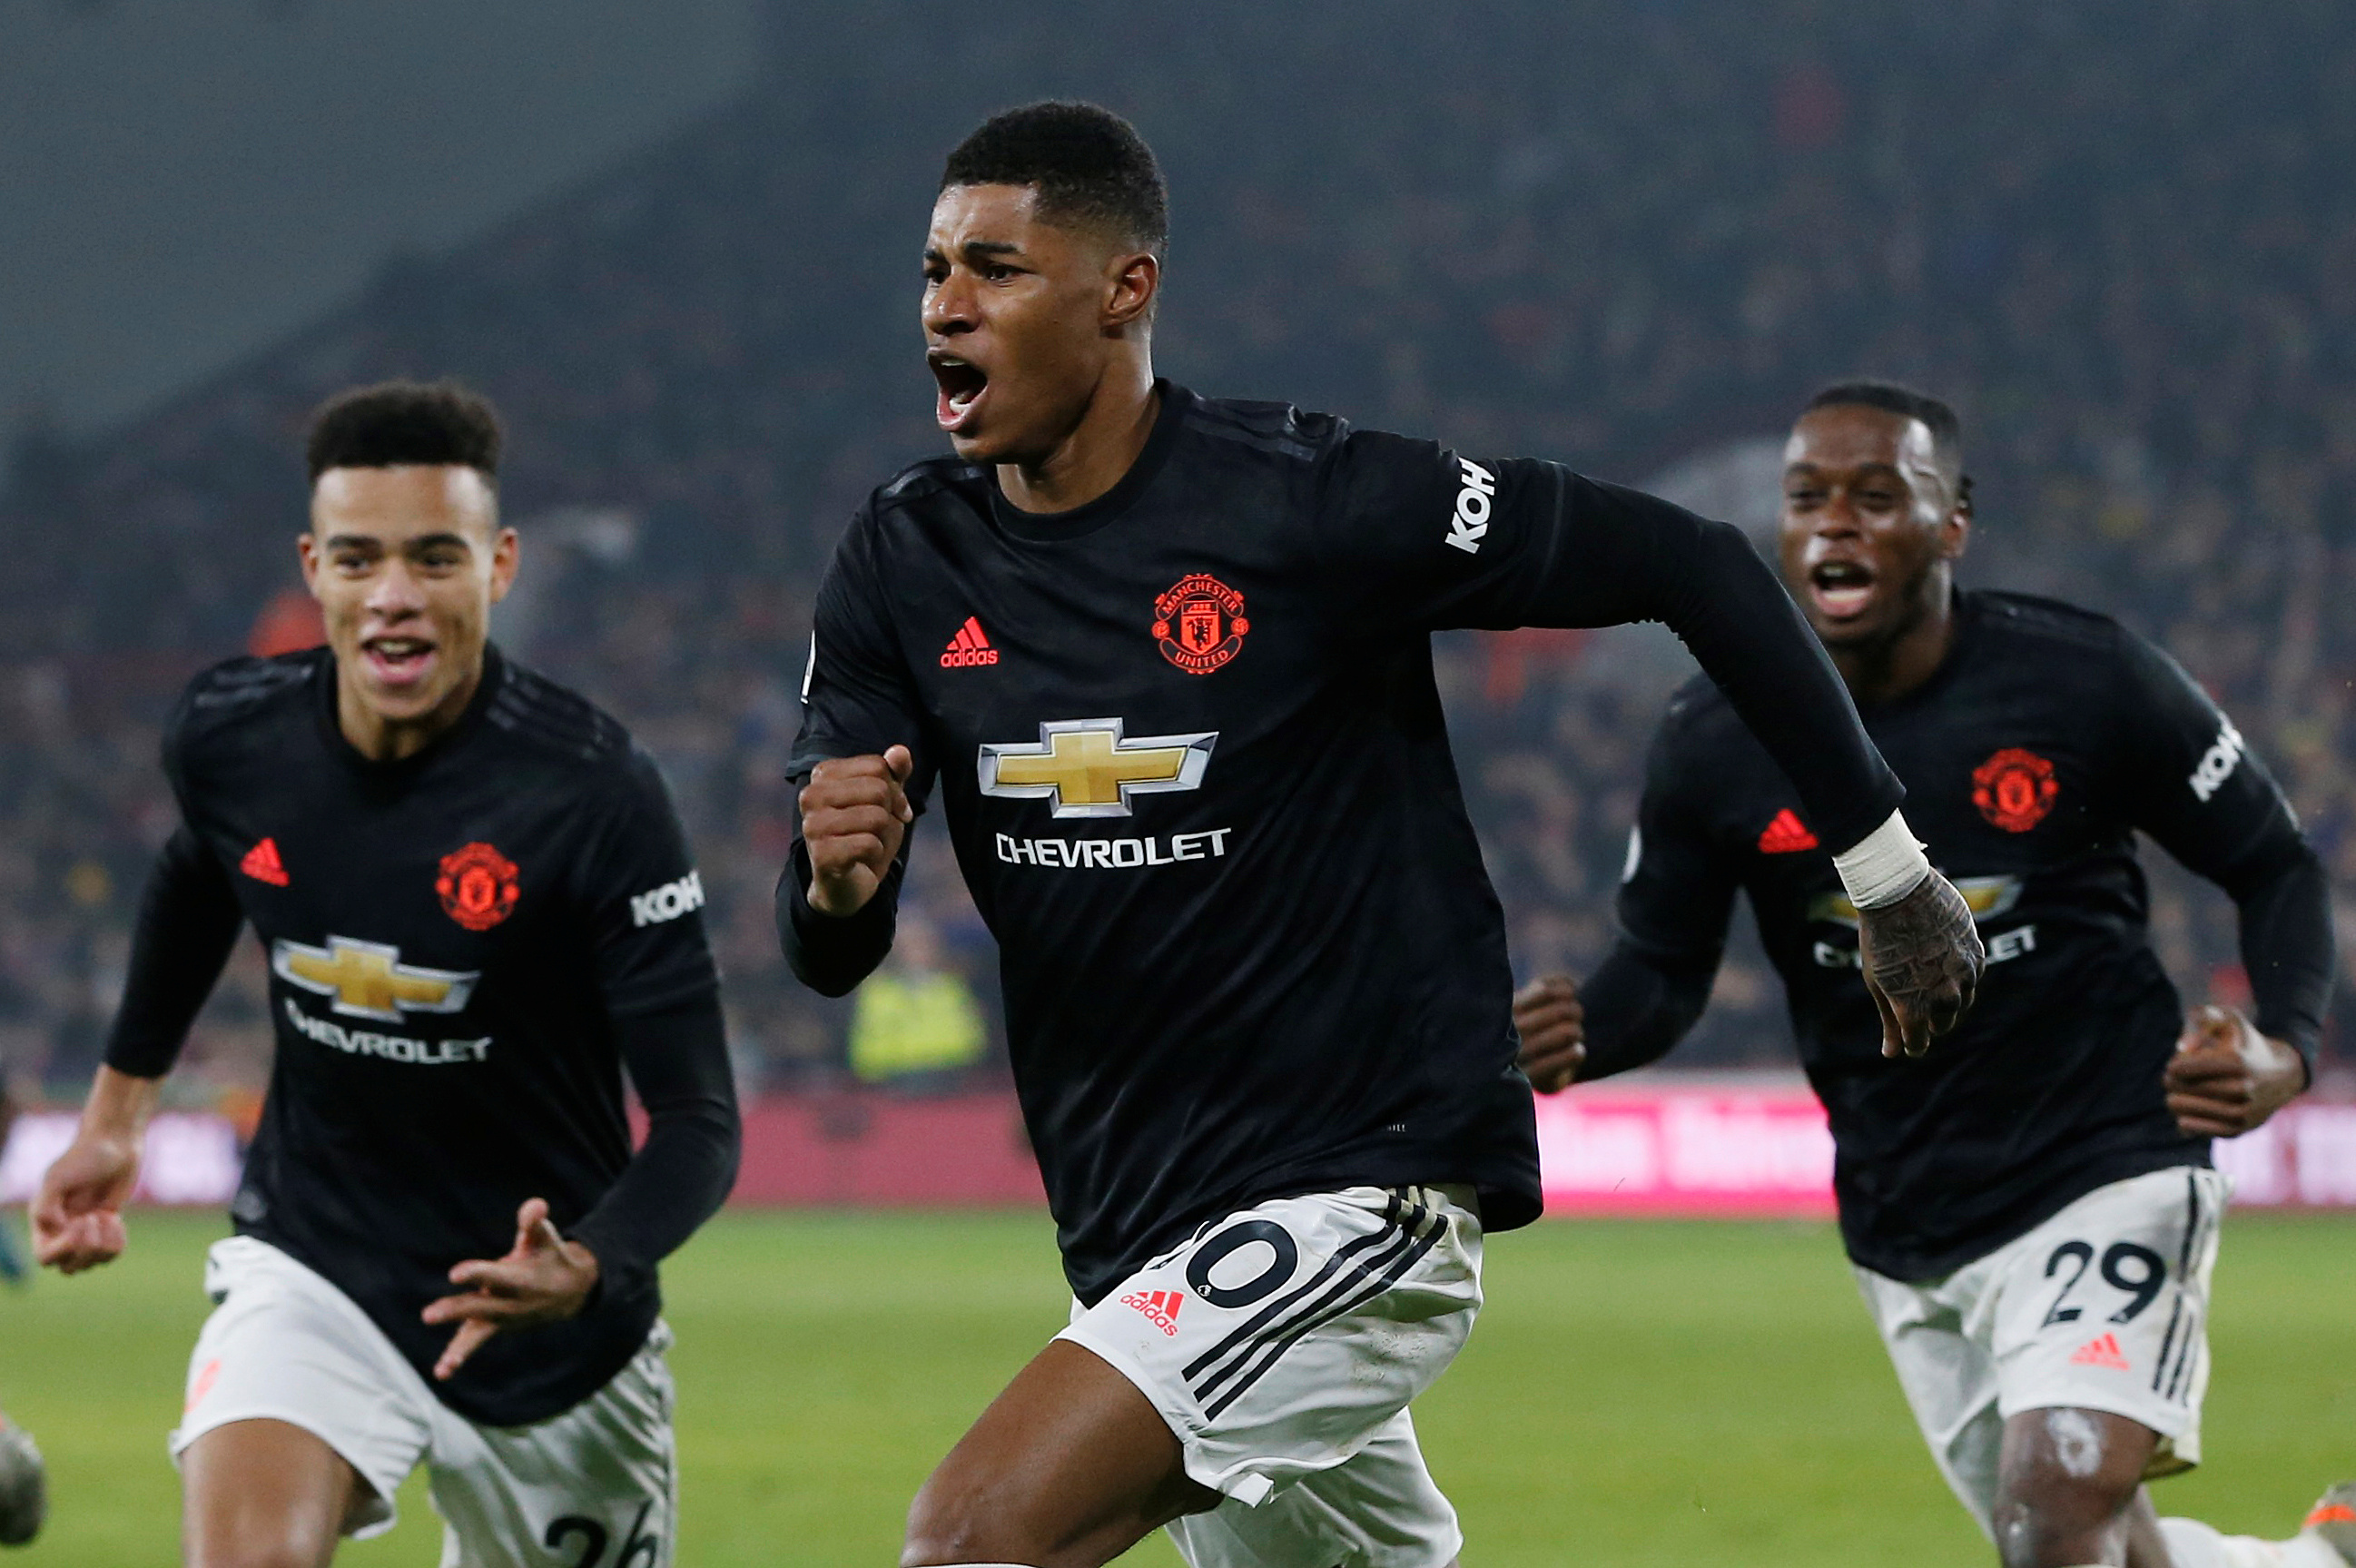 Rashford confident Manchester United are learning and improving